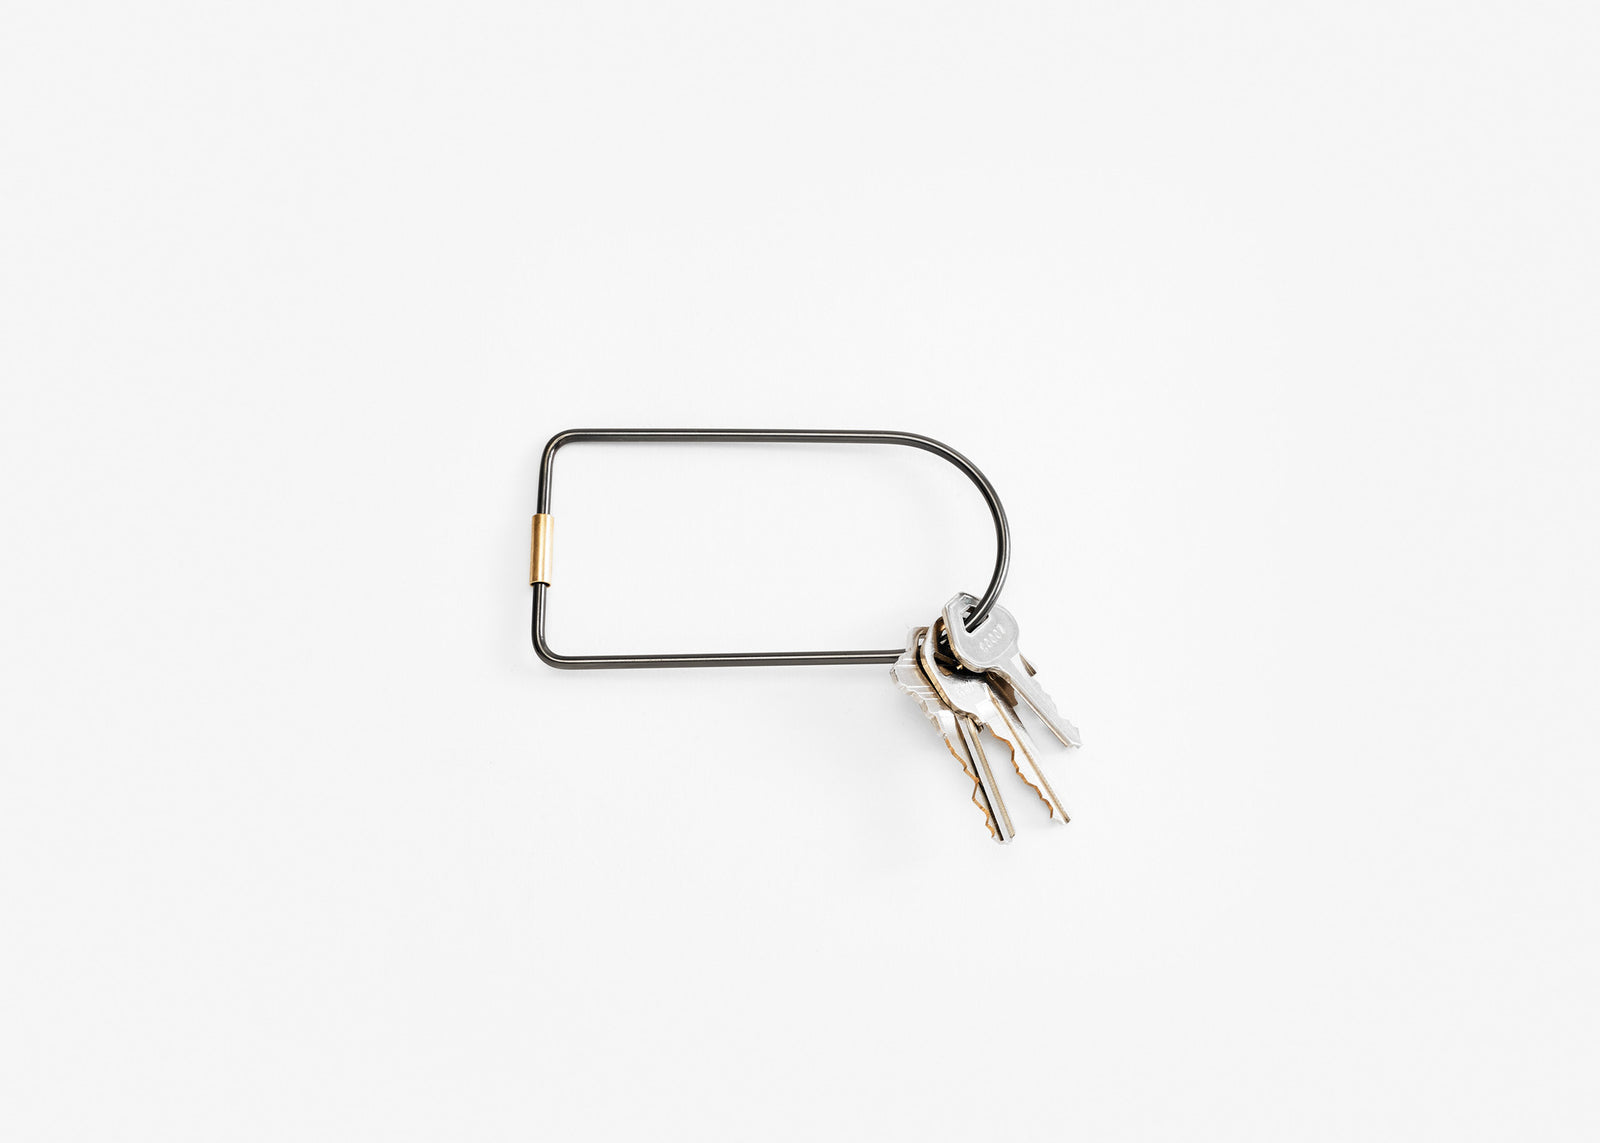 Contour Key Ring - Black/Bend